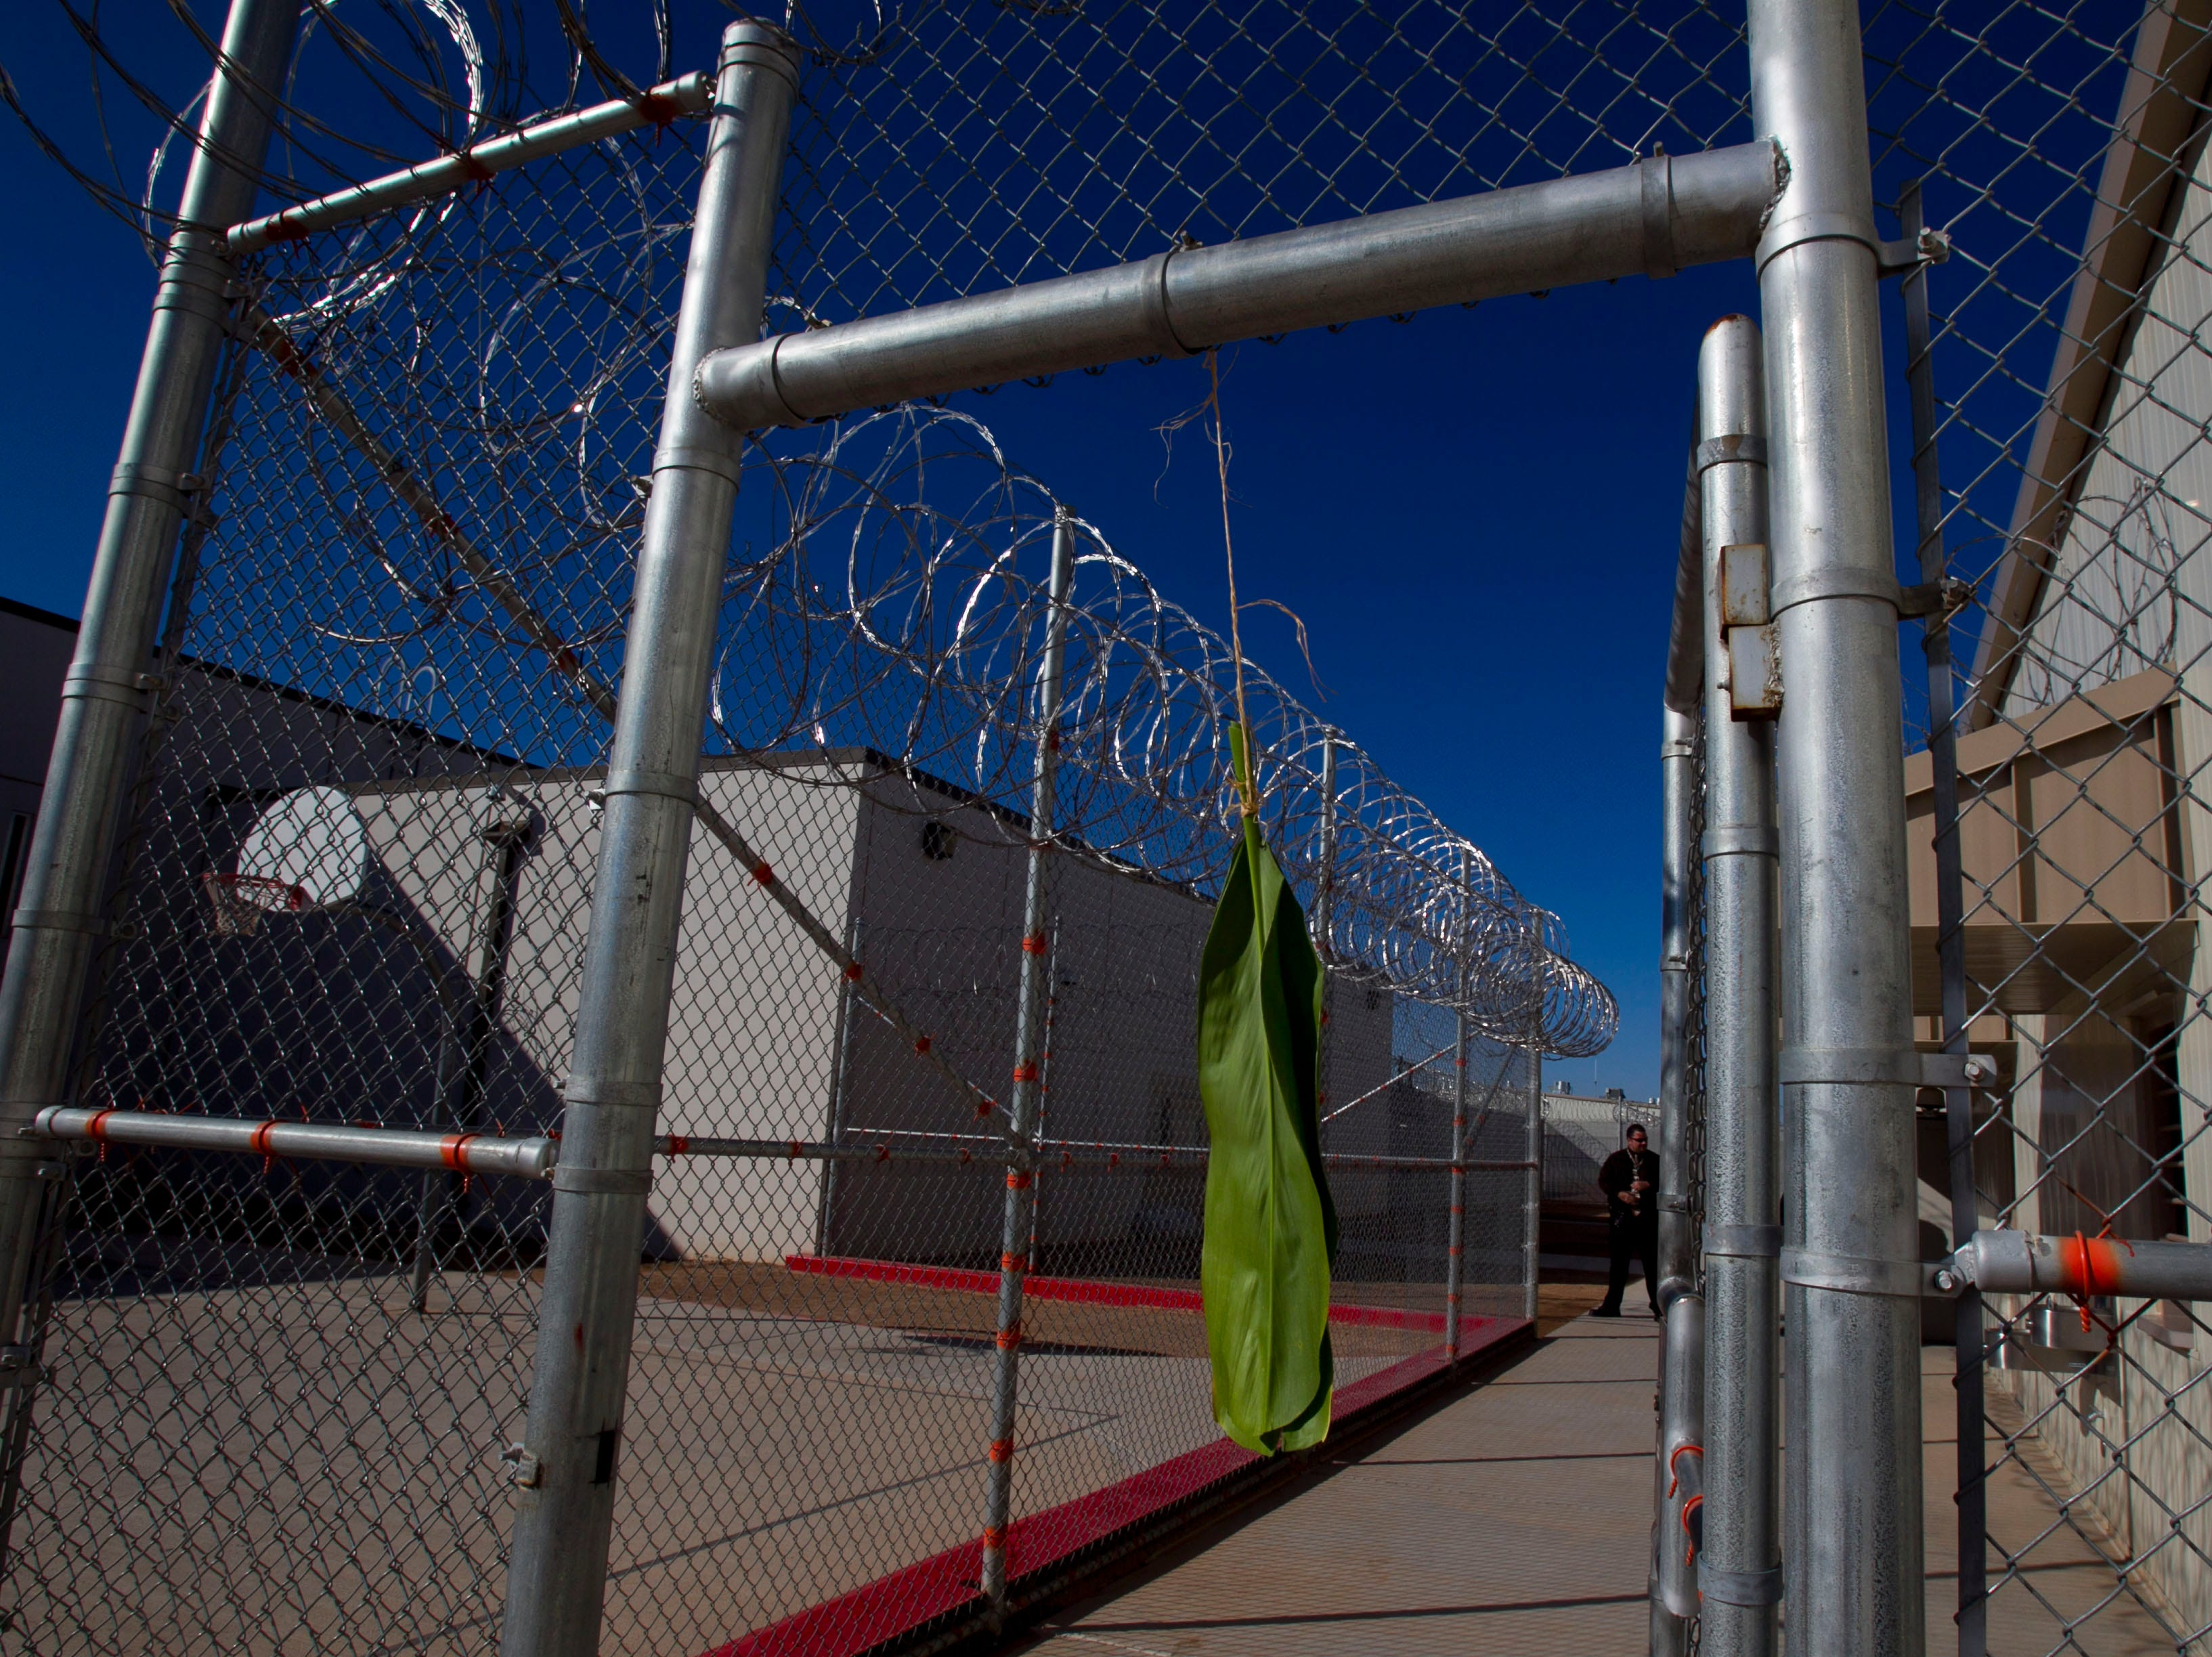 Saguaro Correctional Center in Eloy, which houses inmates from Hawaii serving lengthy sentences, brought in a spiritual adviser to lead up to 100 inmates in rituals and prayers in October 2011.